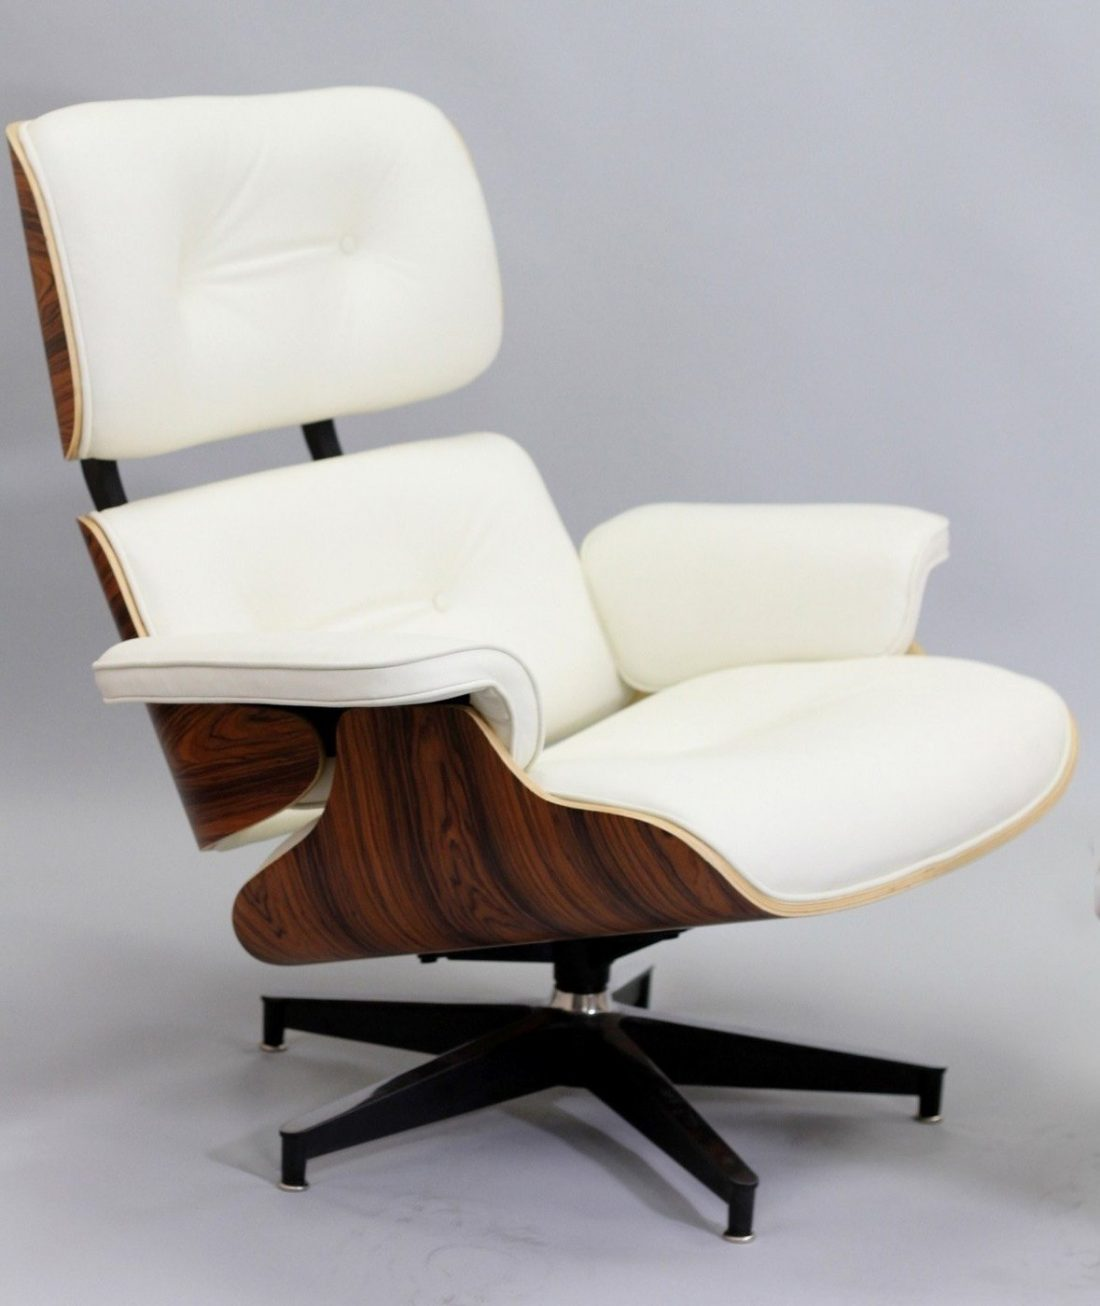 sitting chair folding game herman miller eames and ottoman copy cat chic